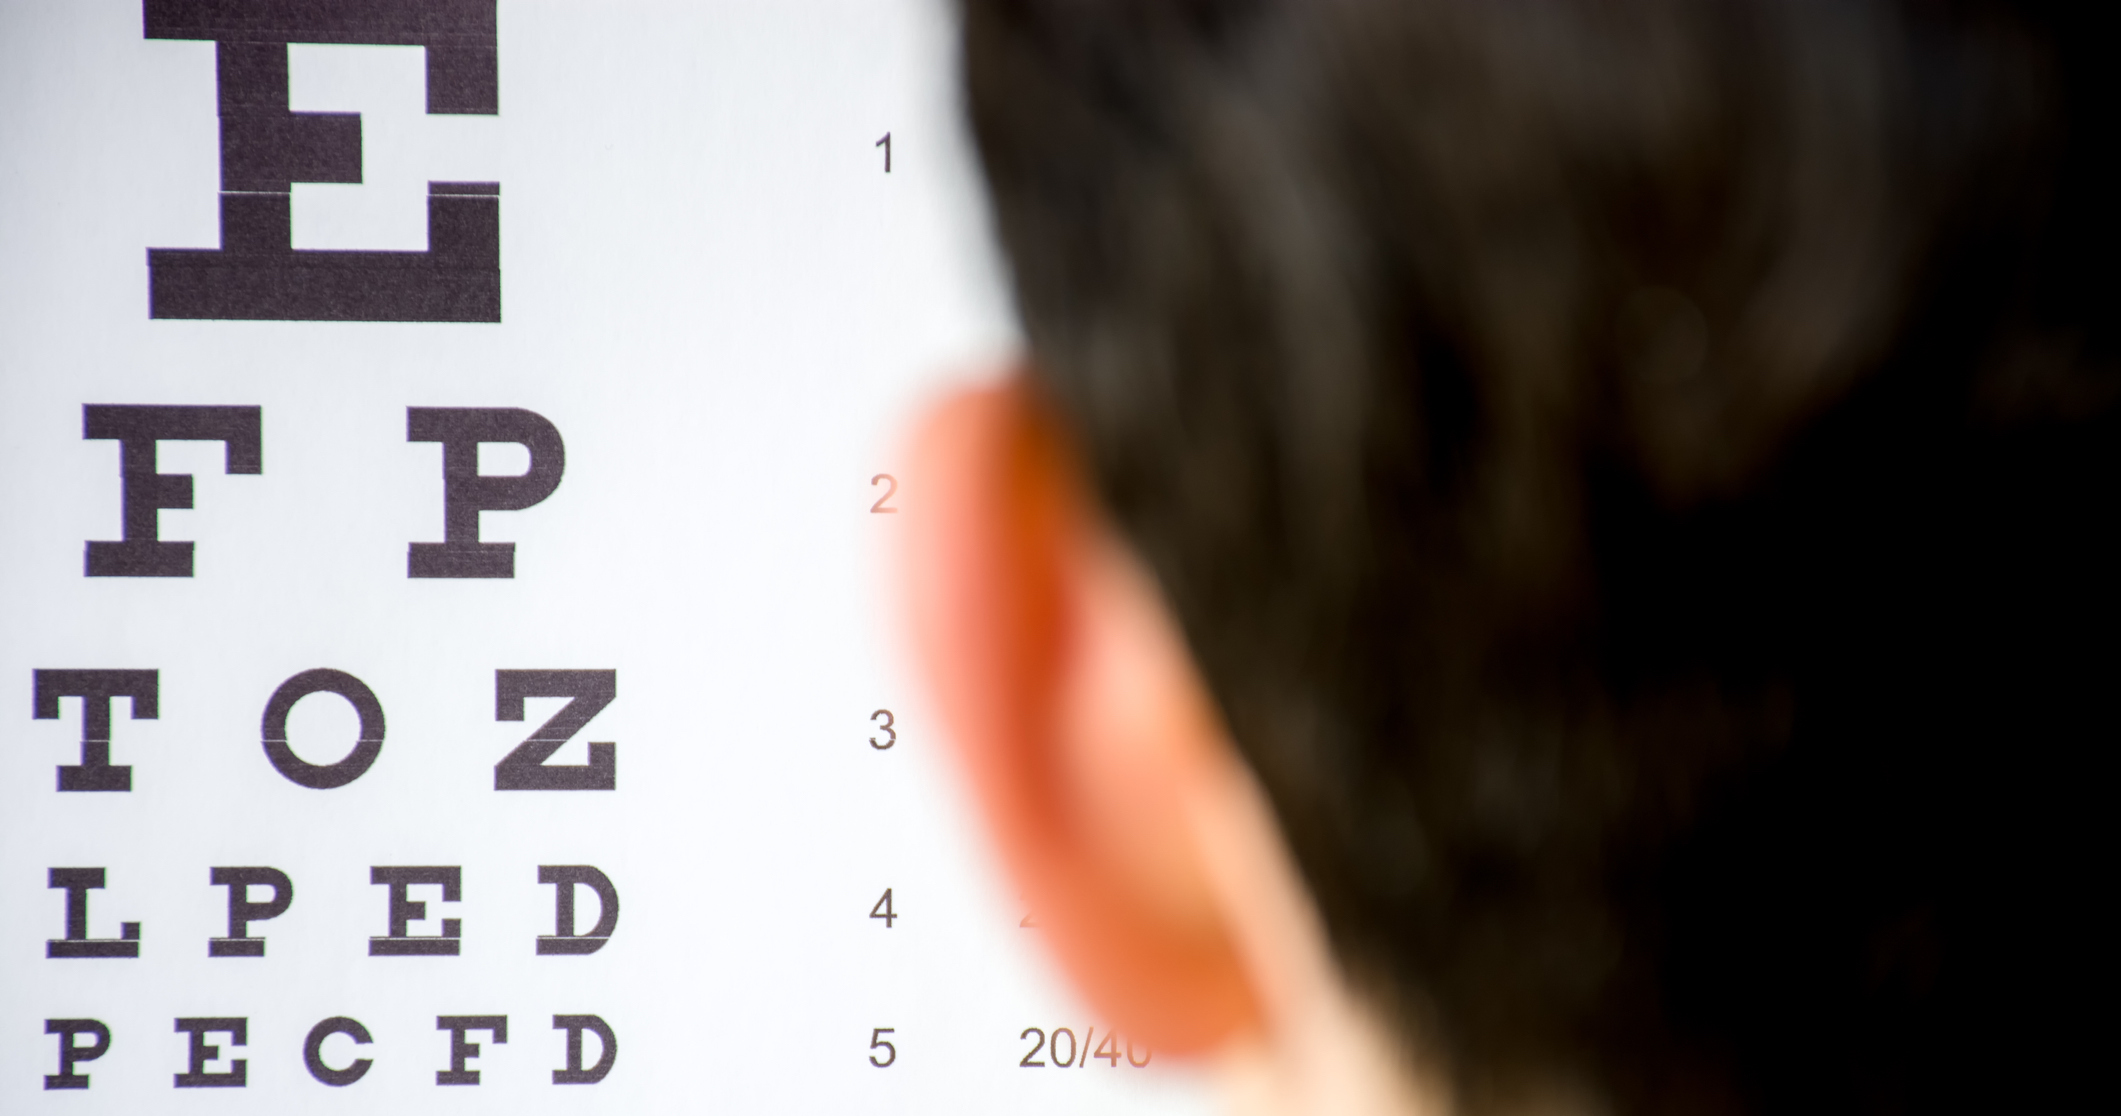 Image of an eye chart used to test vision.